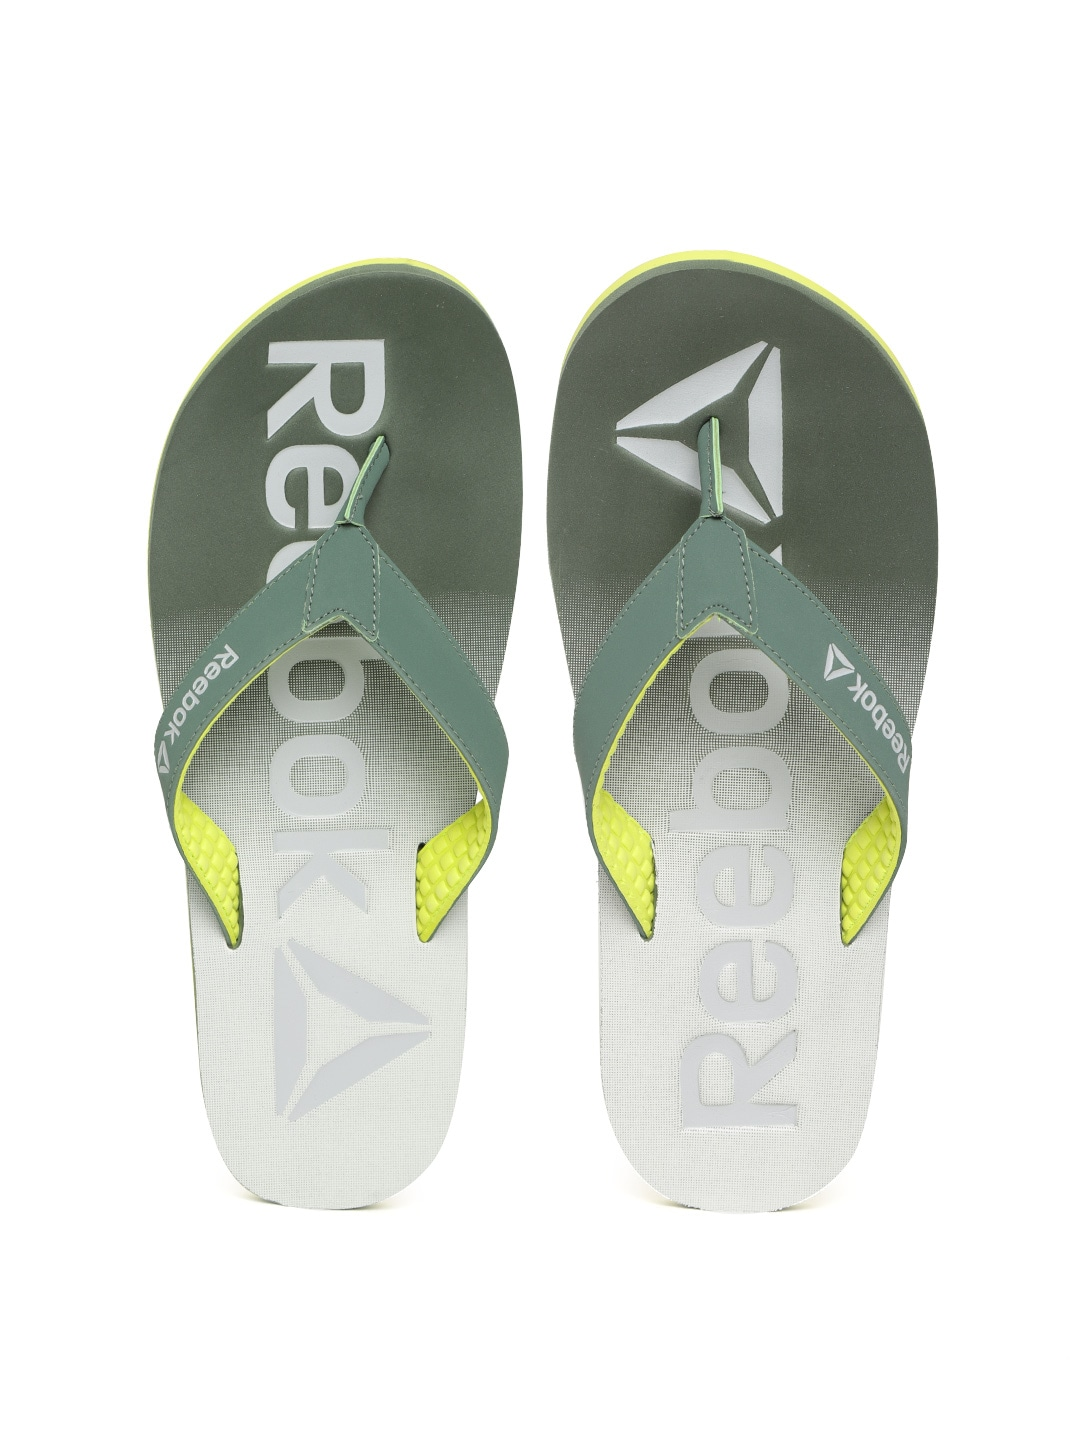 28c658f37 Reebok Zakk Shoes Flip Flops - Buy Reebok Zakk Shoes Flip Flops online in  India